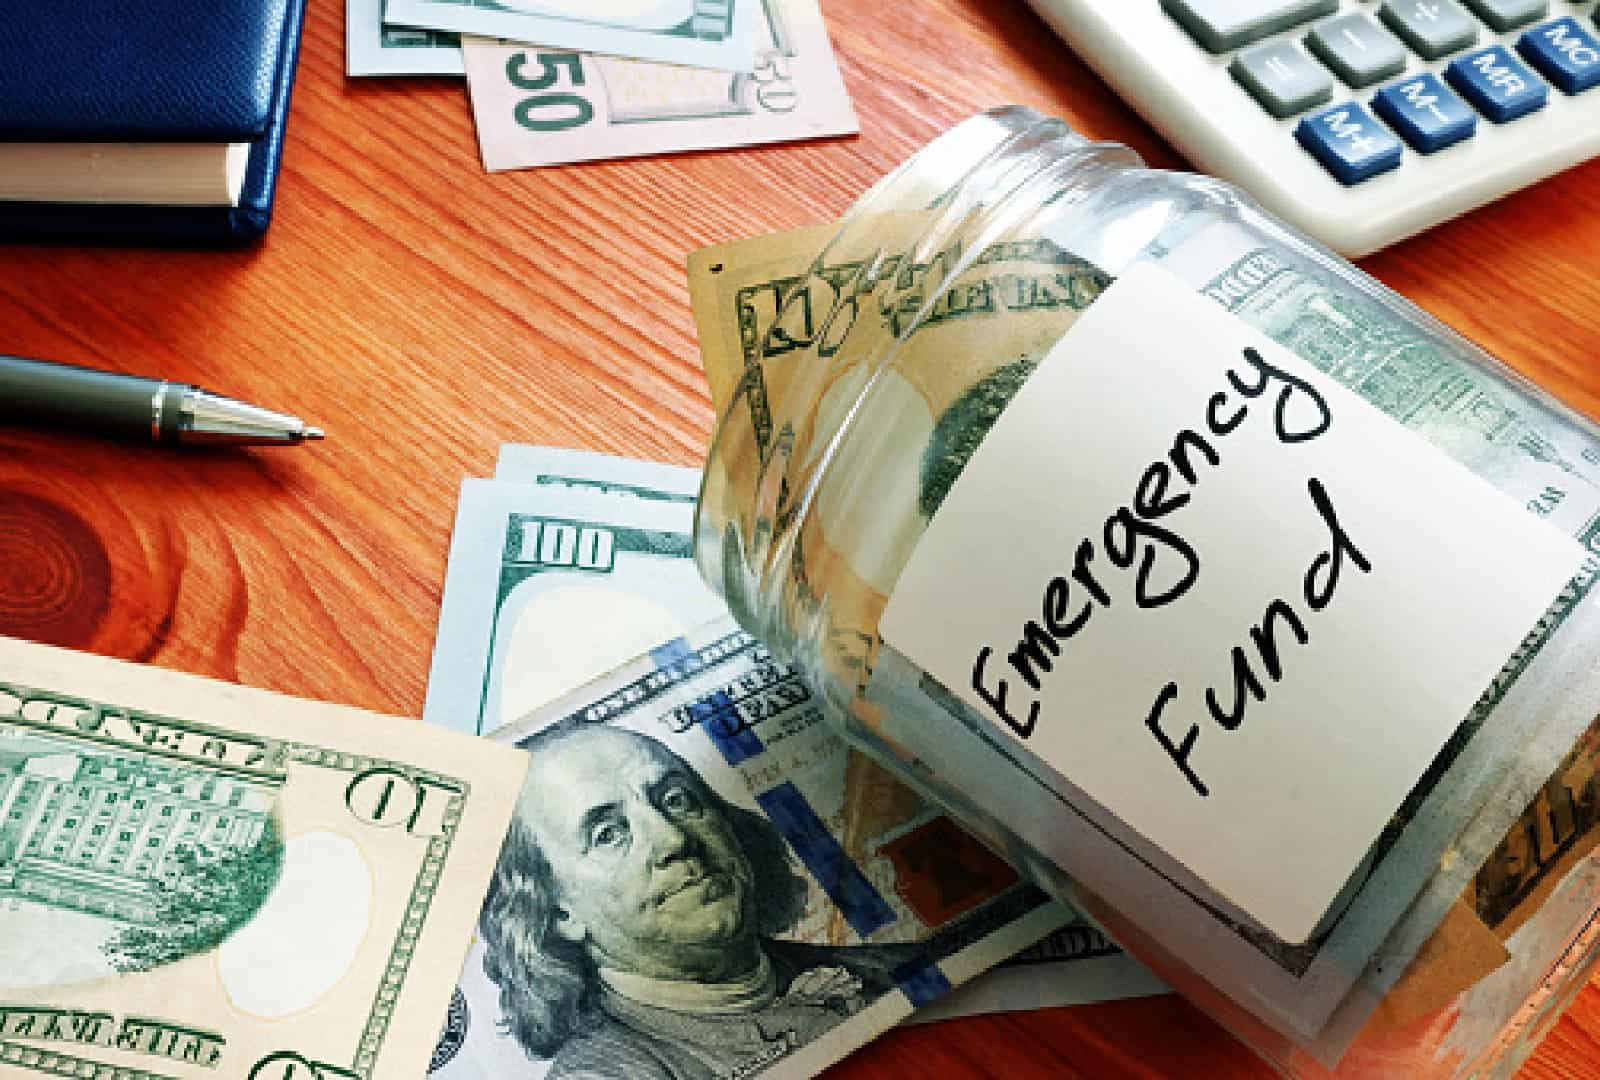 5 Easy Ways To Manage Your Finances Better